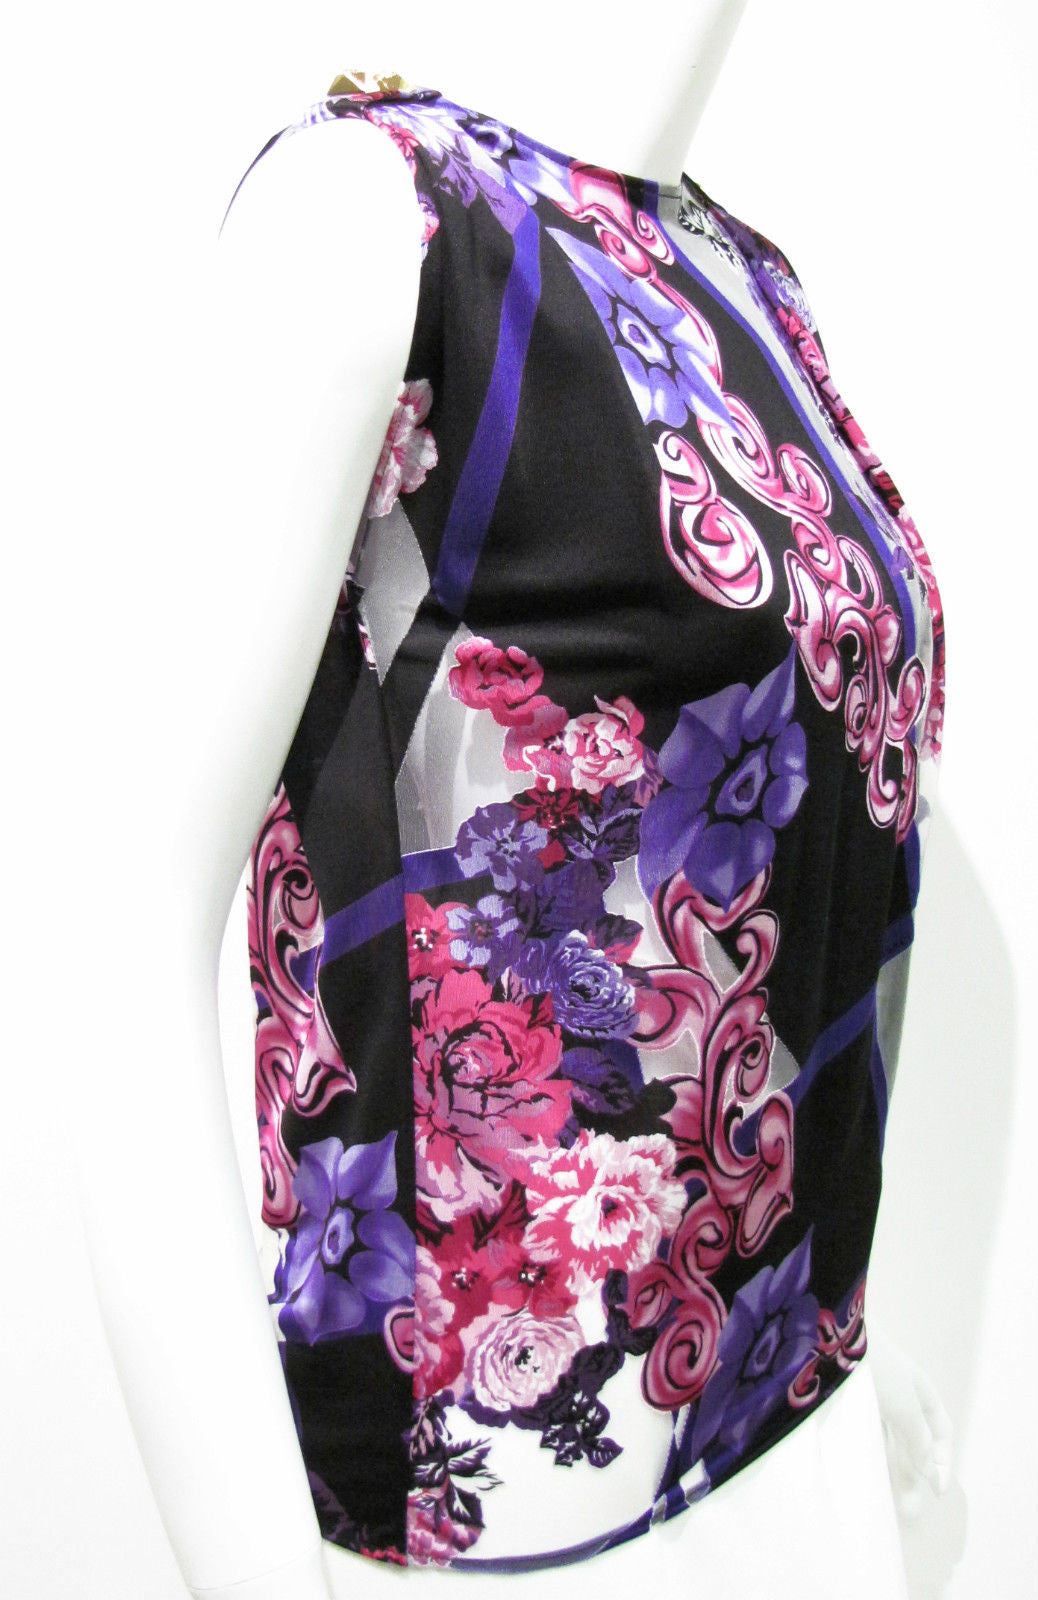 bisbiz.com VERSACE  NWT Black Purple Floral-Print Semi-Sheer Sleeveless Blouse Tank Size: IT 38 / US 4 - Bis Luxury Resale